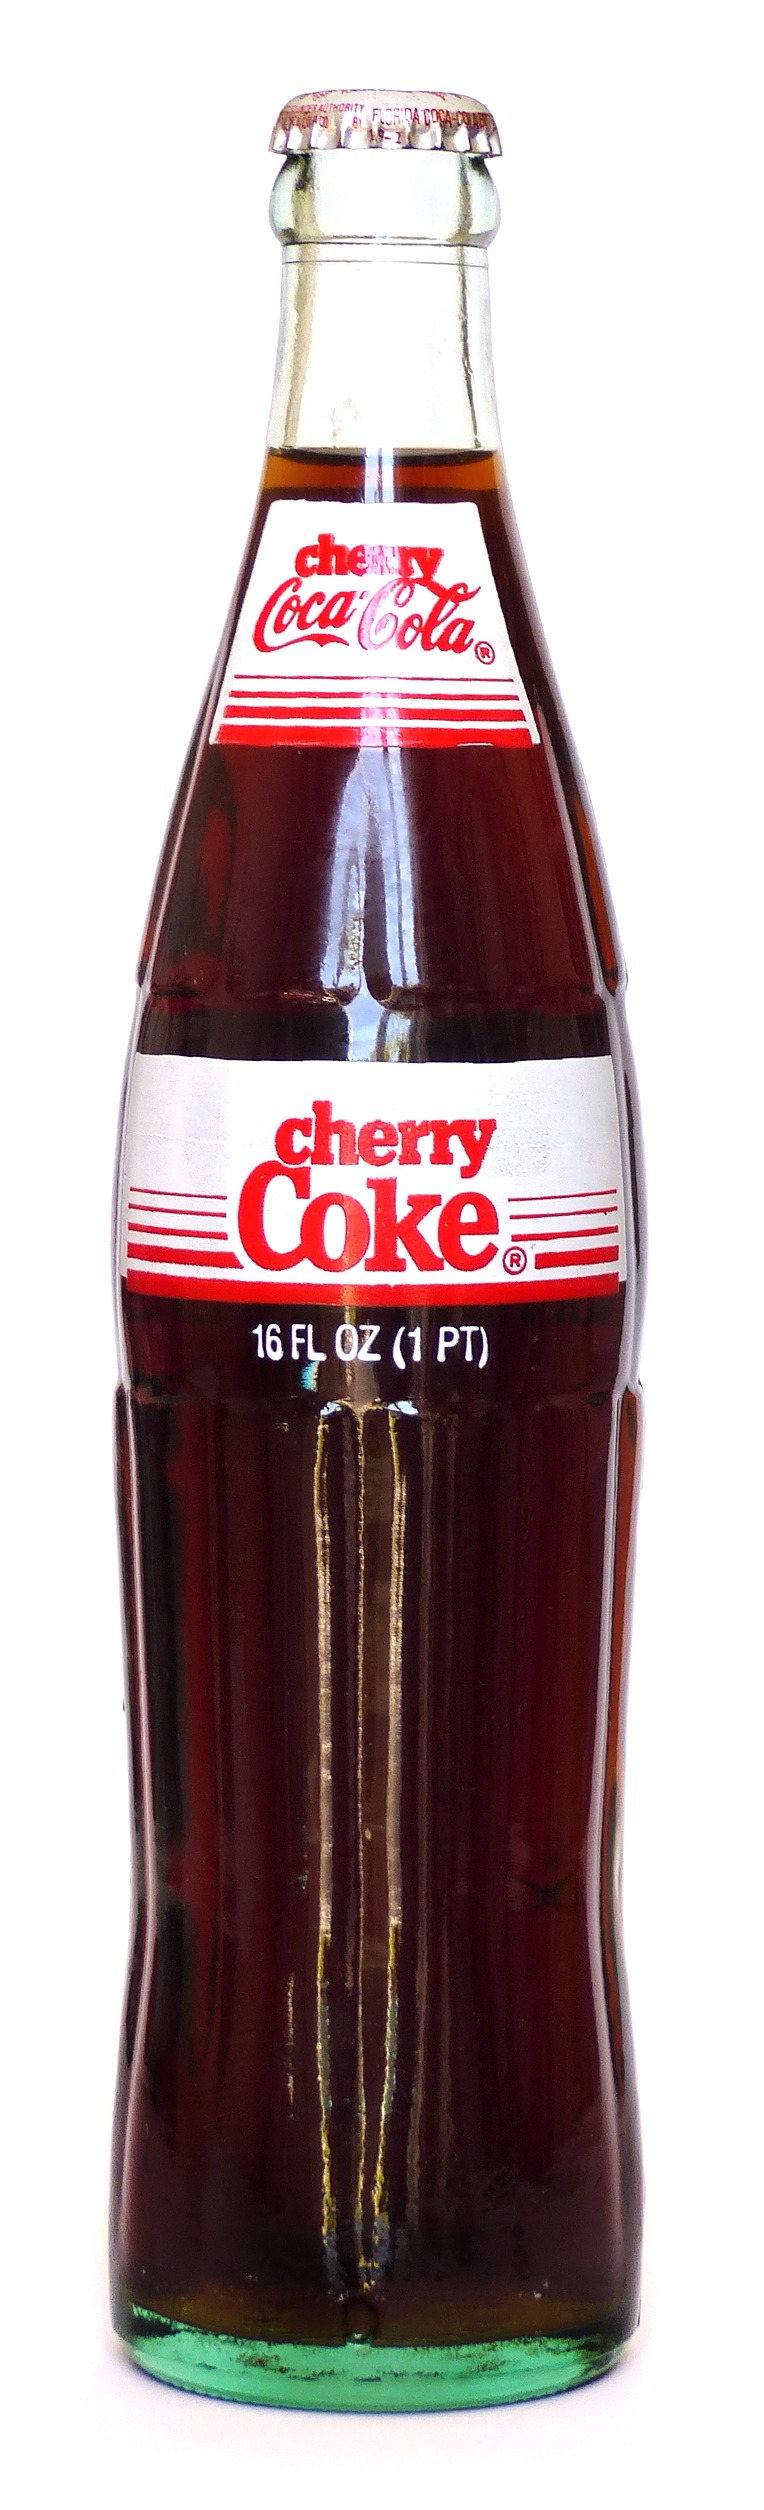 Coke Bottle from USA (US129)